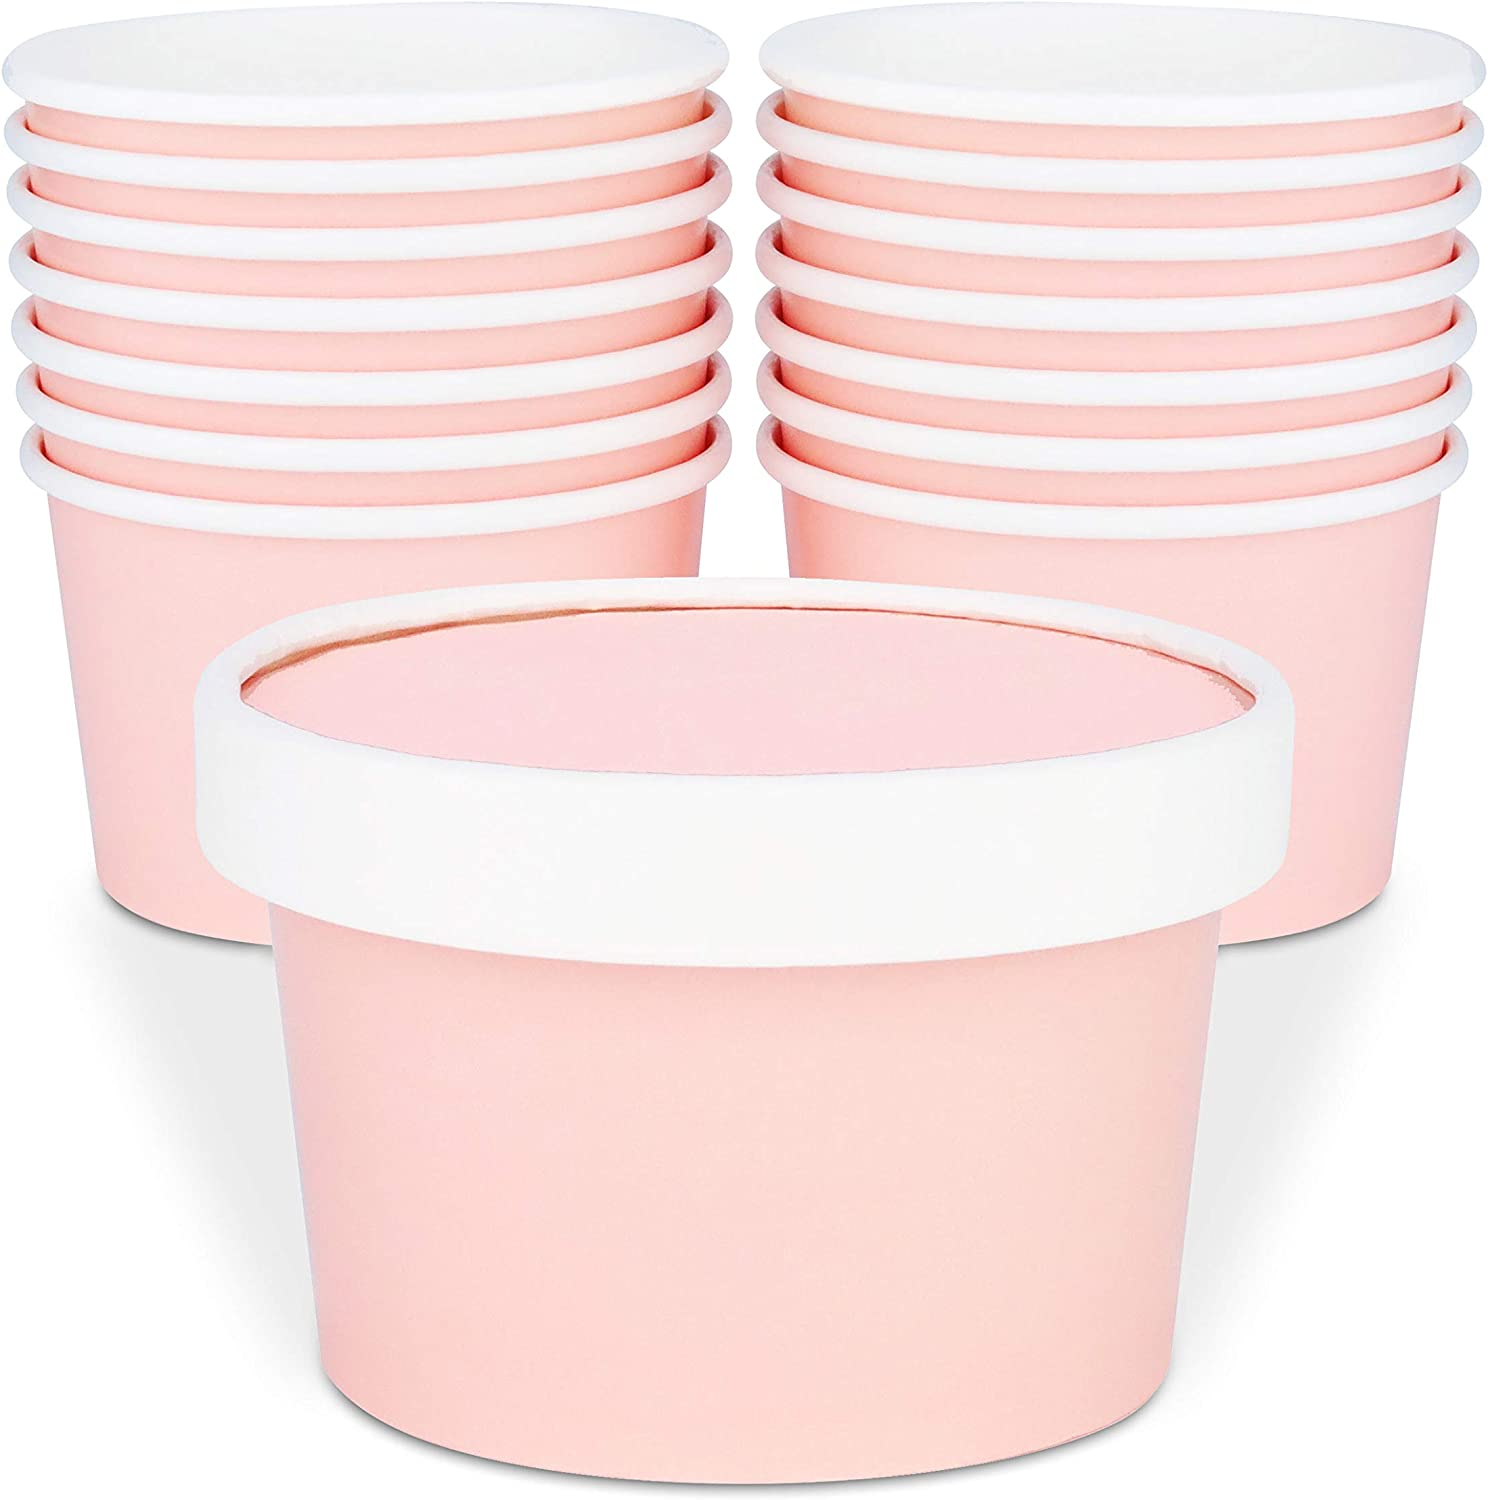 Glowcoast Ice Cream Containers With Lids - 6 oz (Mini Pint, 30 set) Ice Cream Storage Container for Homemade Icecream. Freezer-Safe Tub with Lid Protect Frozen Desserts like Yoghurt (Peach, 30)